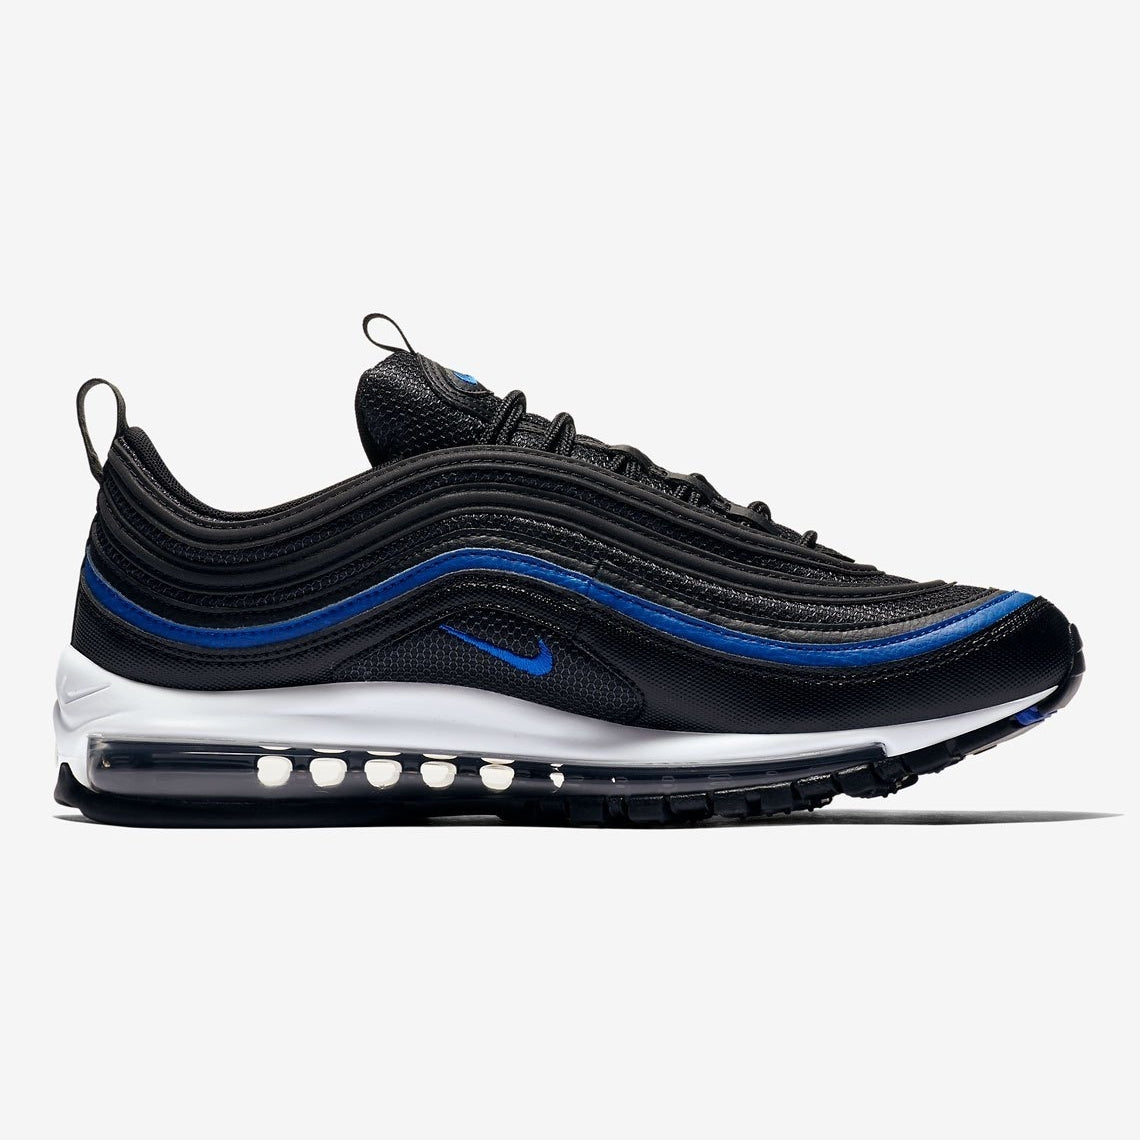 7e7e725b333e4 Nike Air Max 97 OG QS ANTHRACITE BLACK-RACER BLUE (AR5531-001)